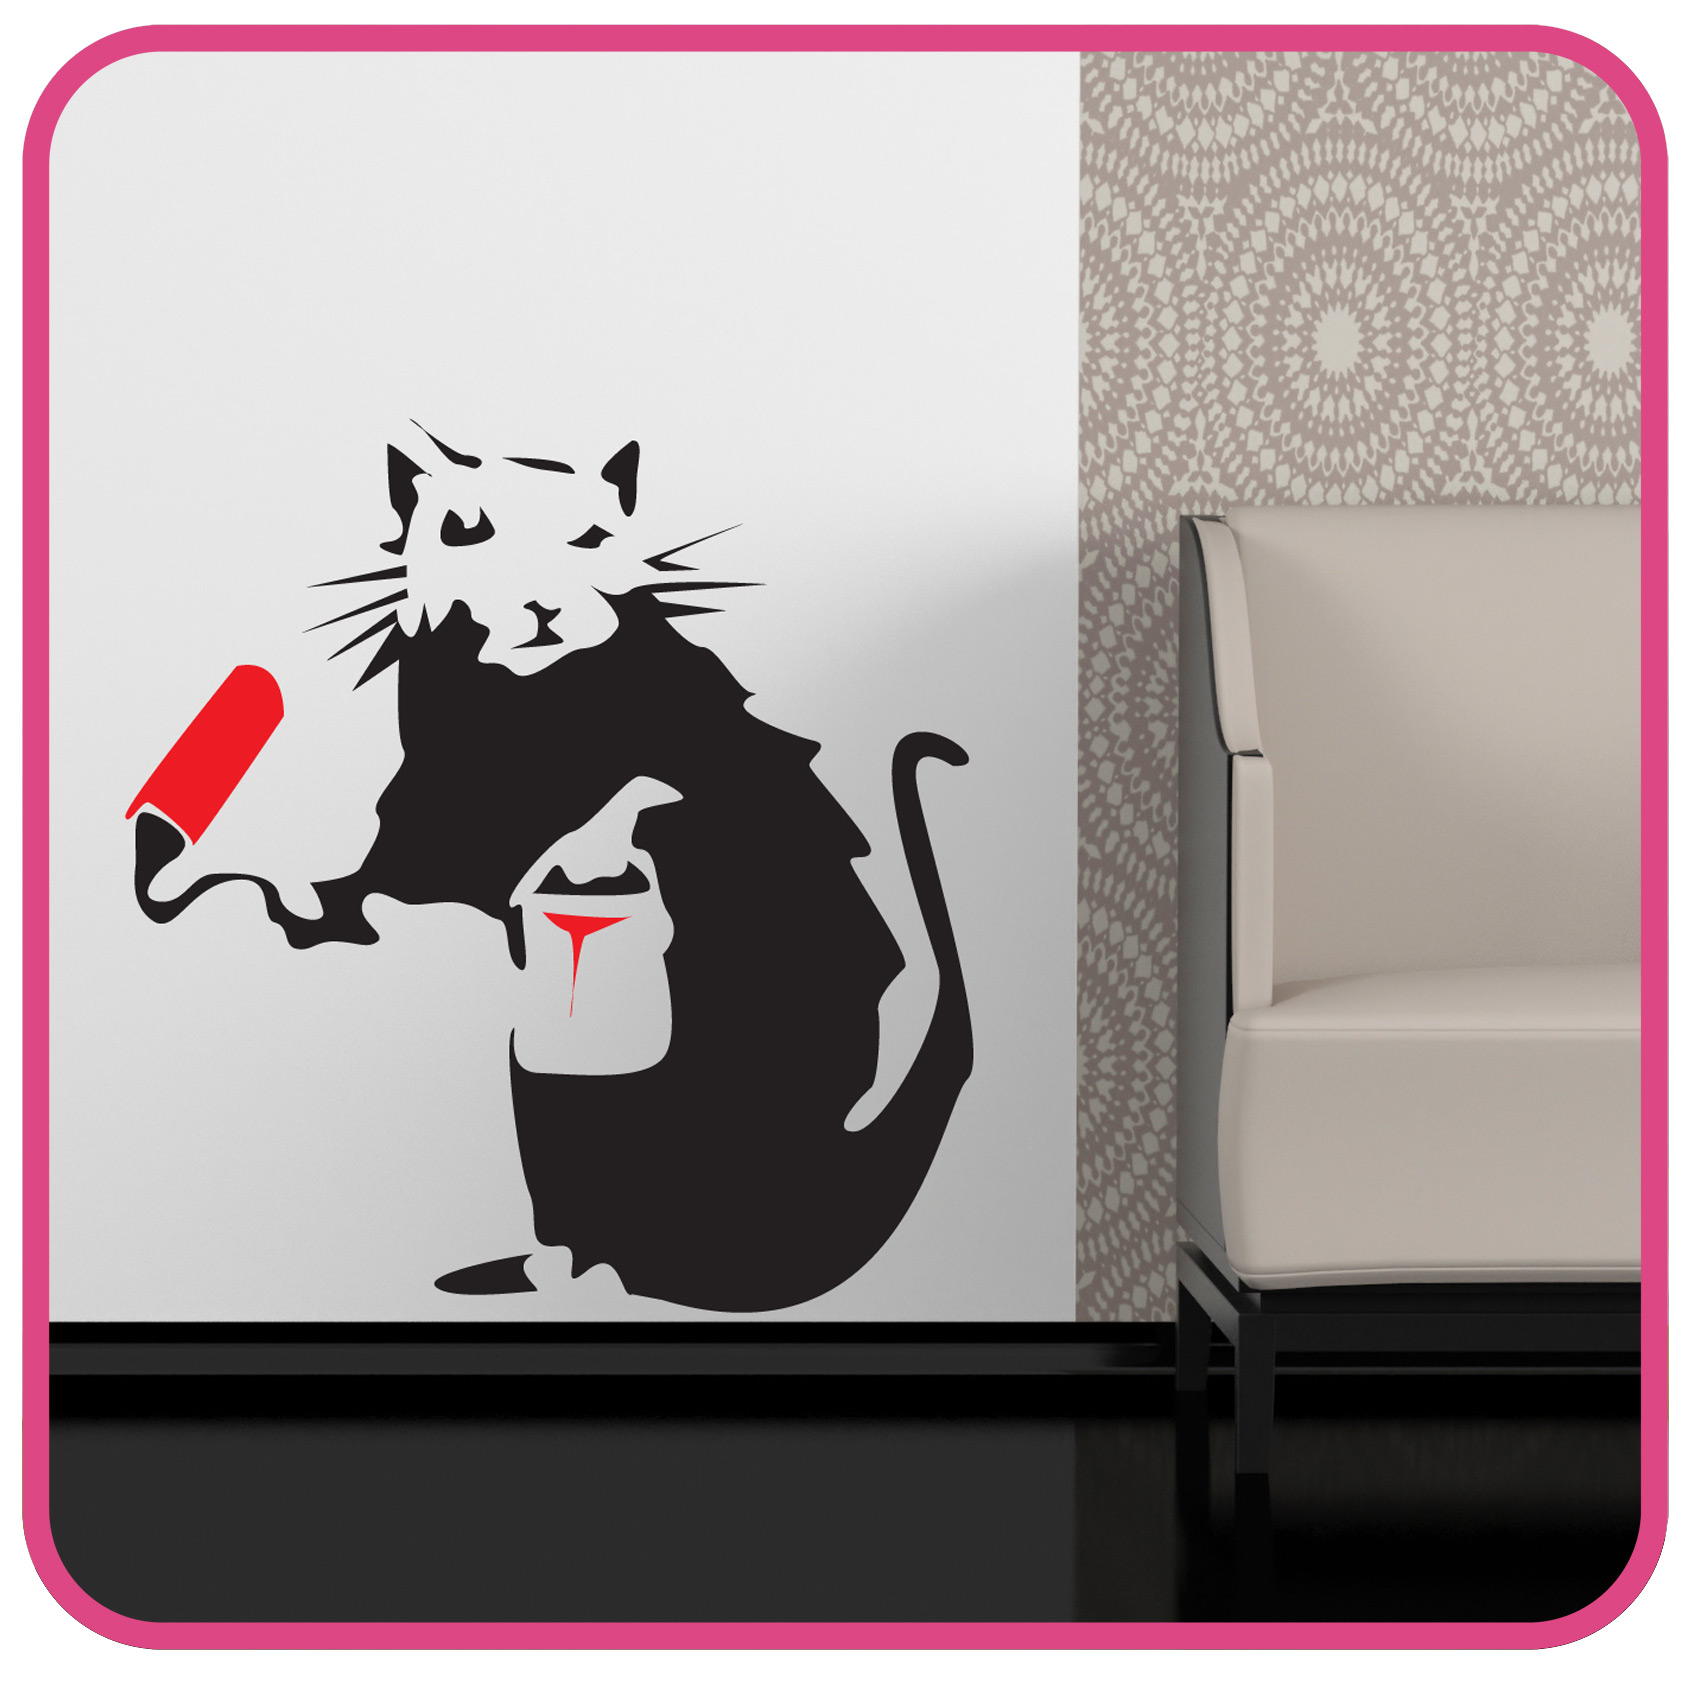 Details about banksy style painting rat wall art sticker decal